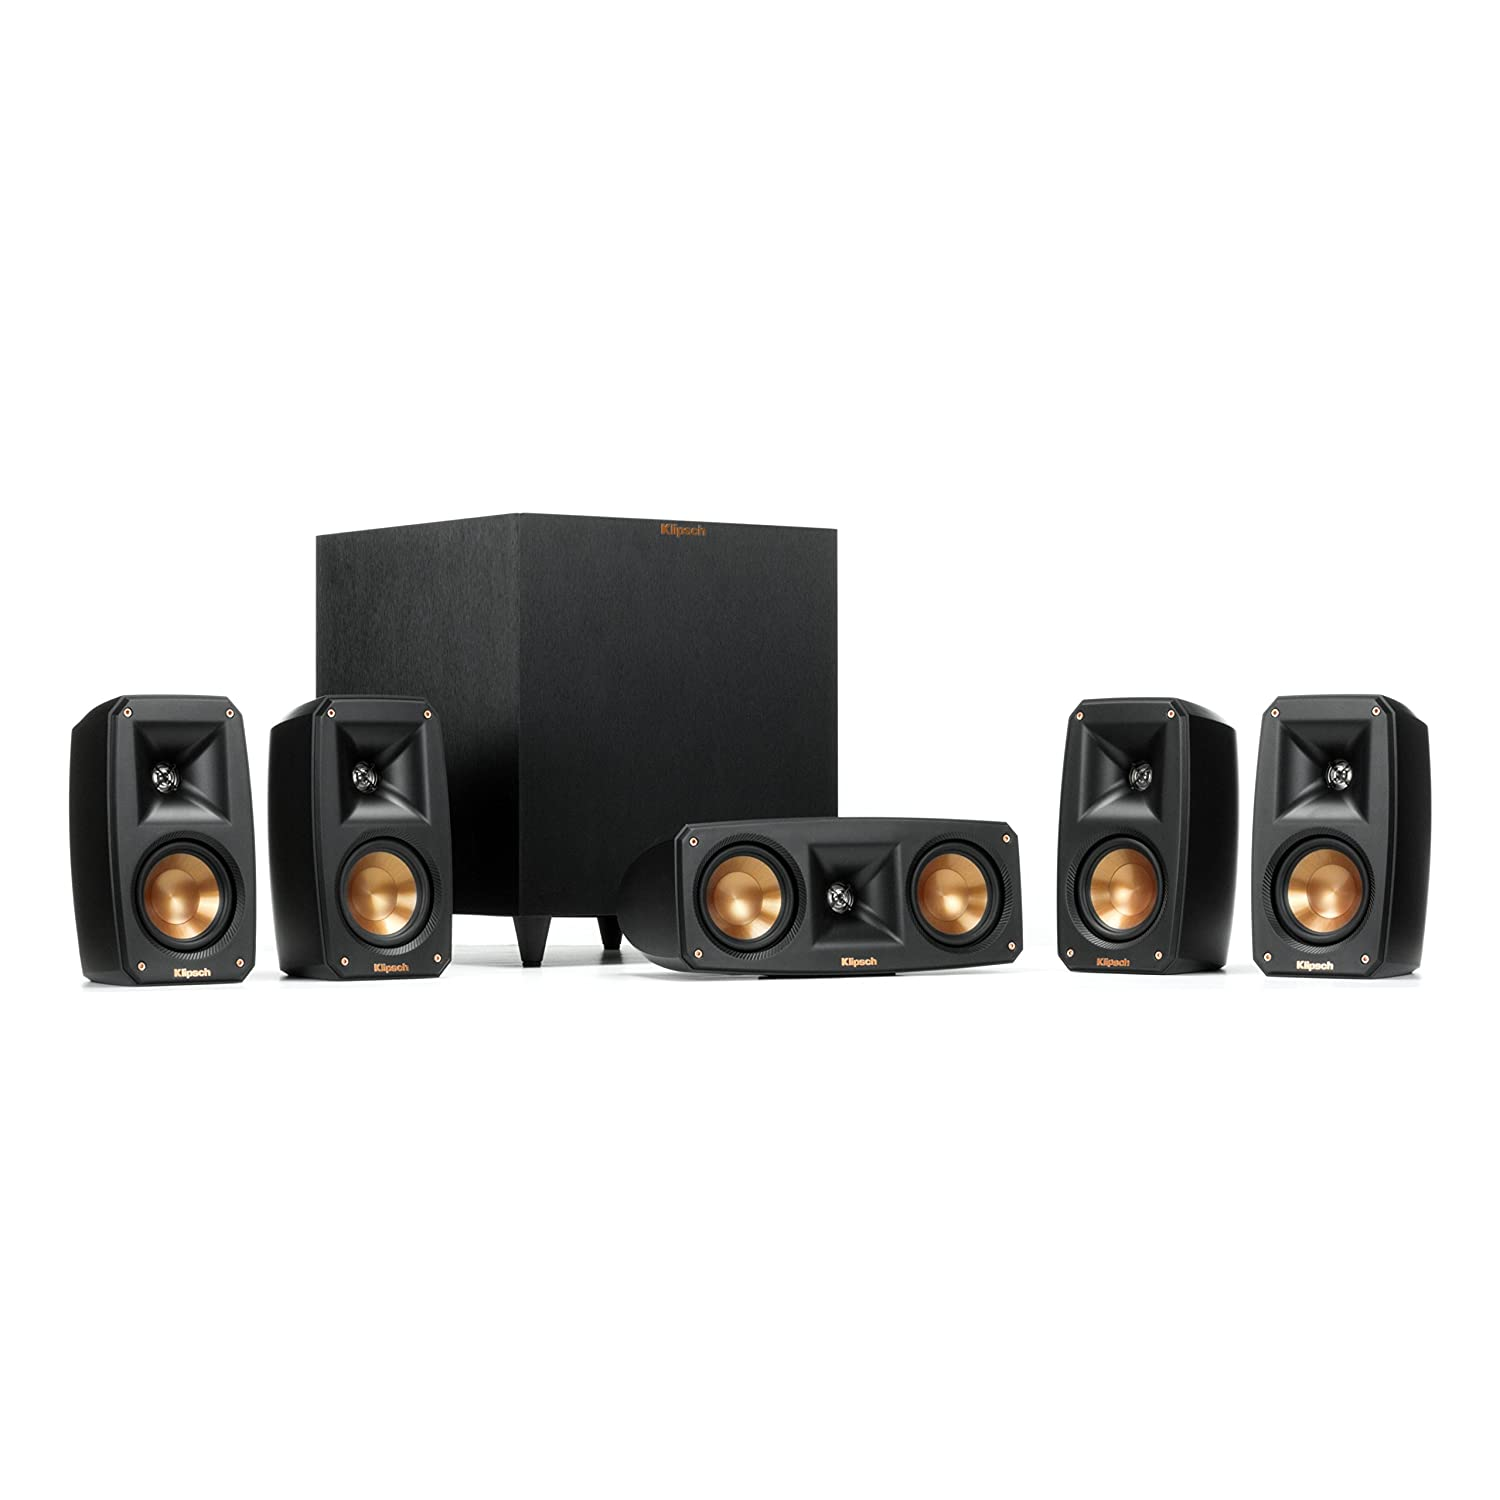 Klipsch Black Reference Theater Pack 5.1 Surround Sound System Tjernlund Products - Audio 1064177